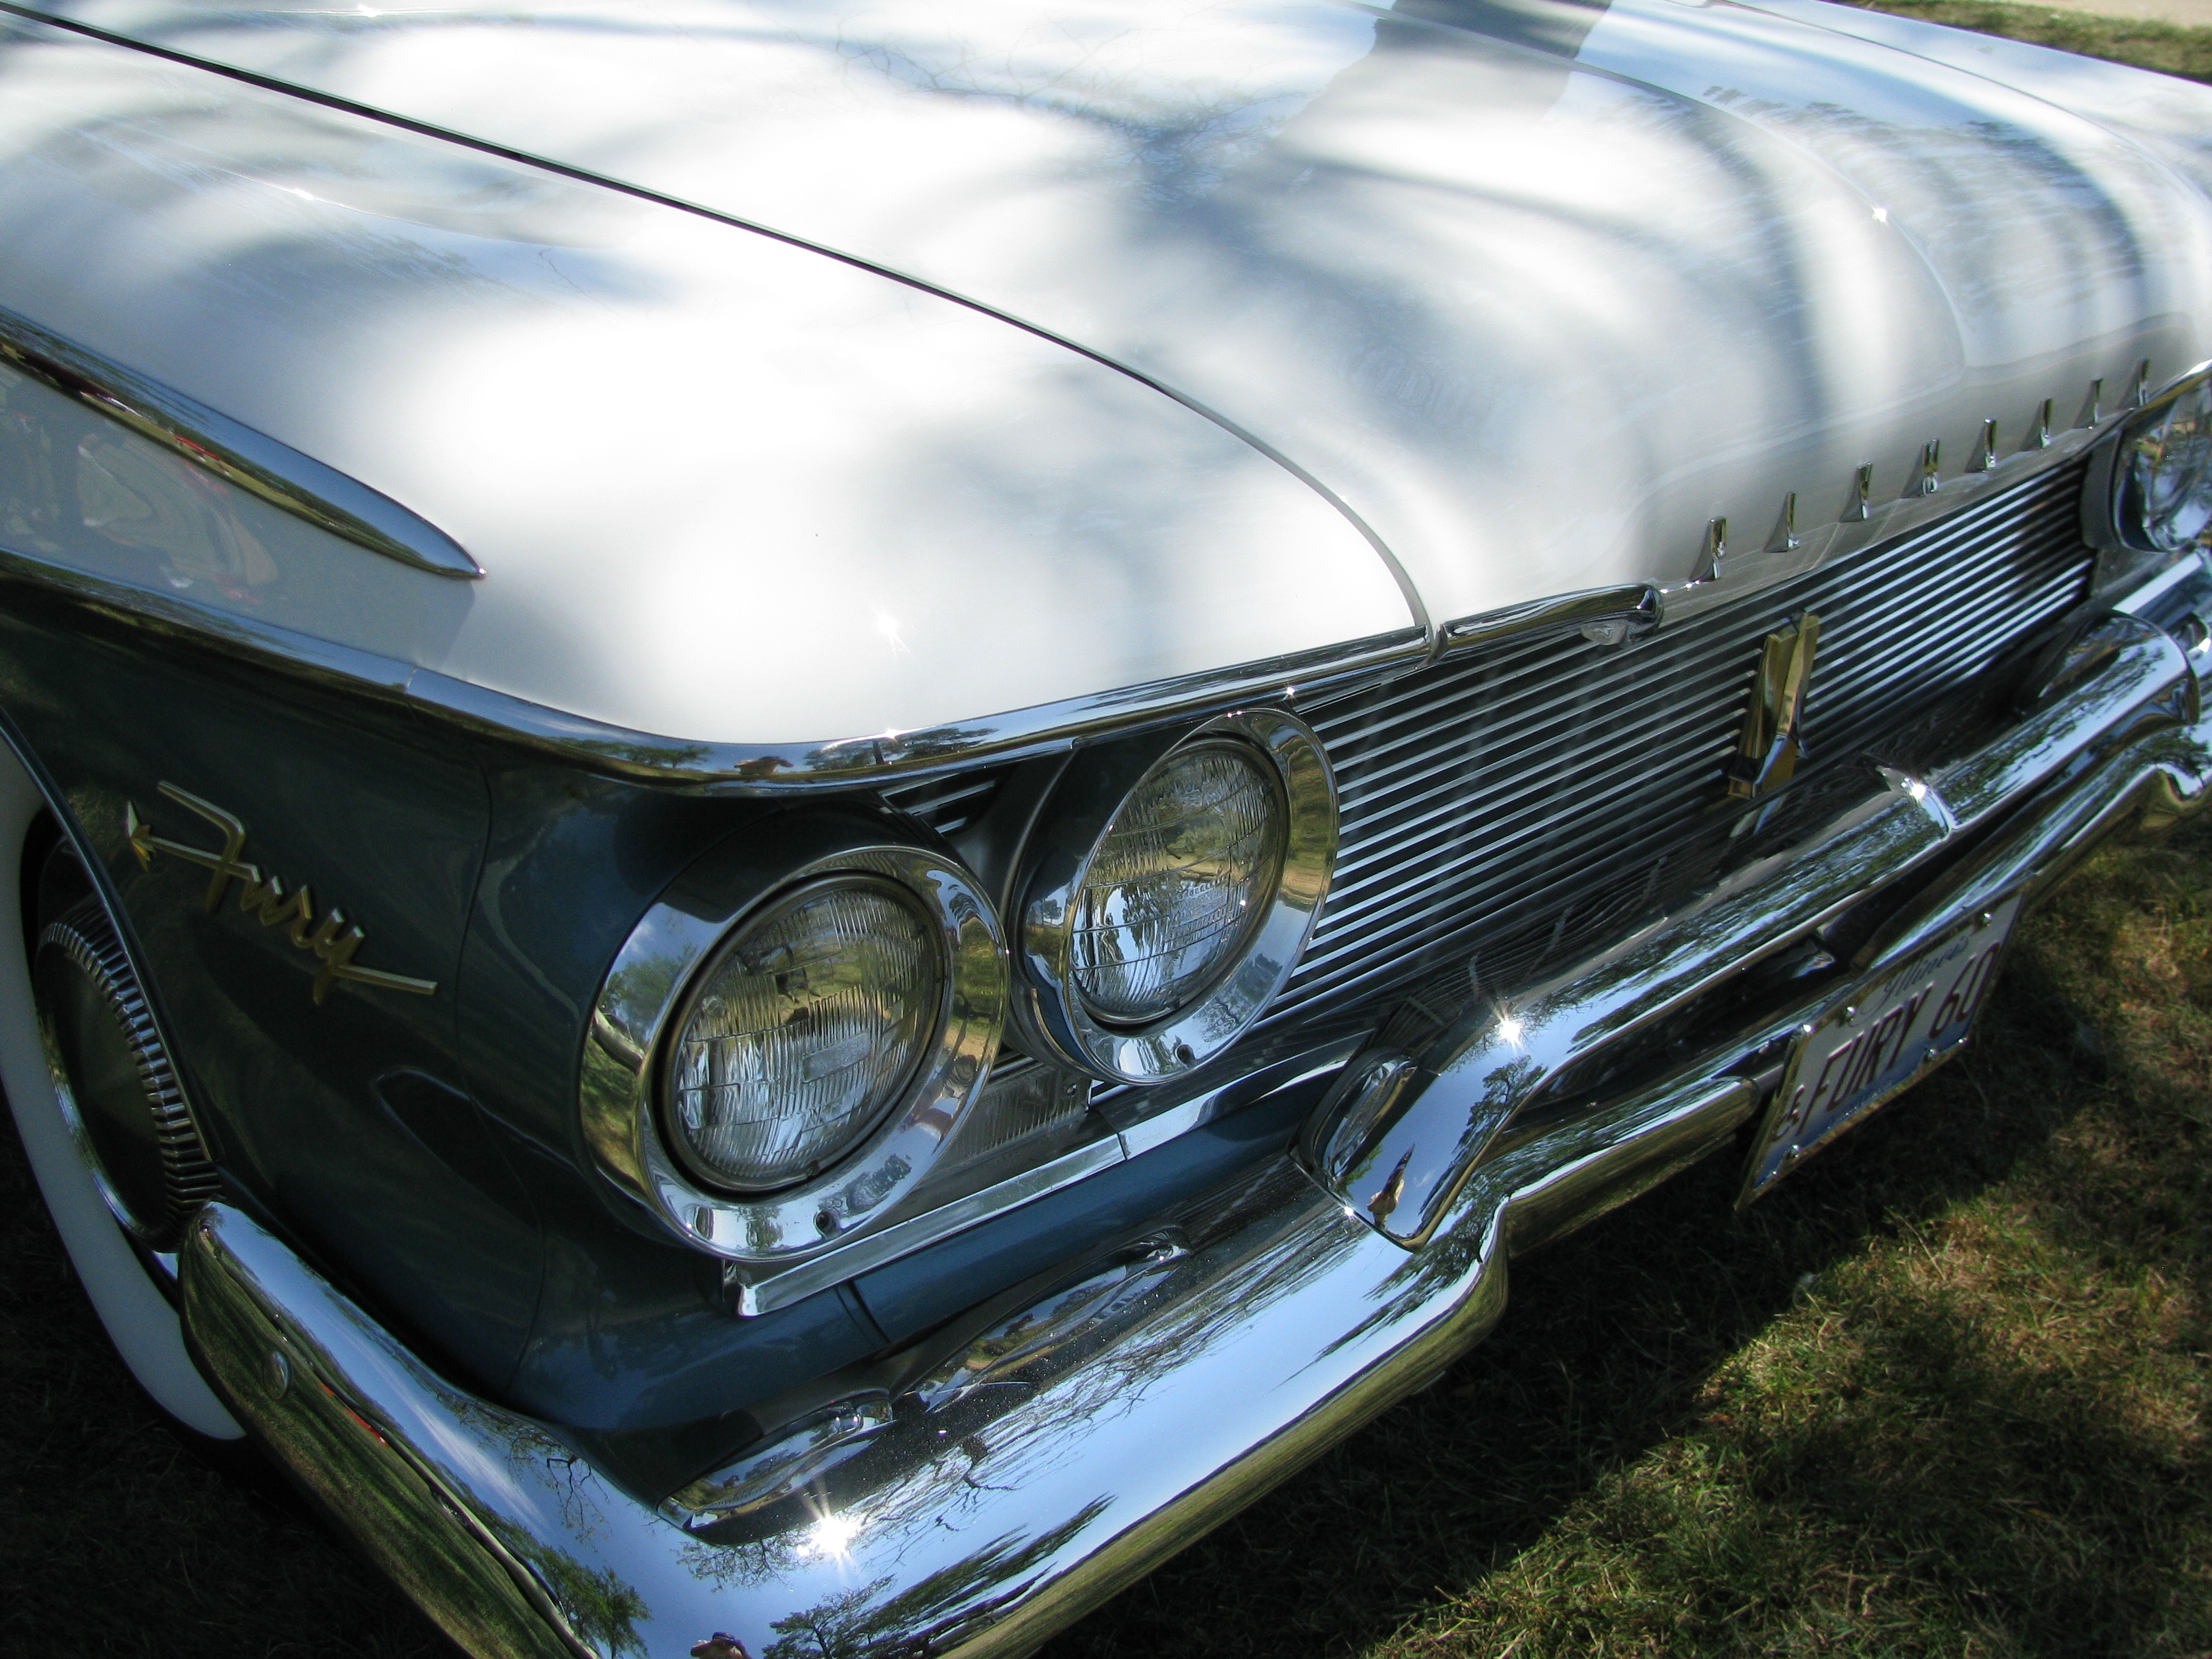 Plymouth Fury The Crittenden Automotive Library 1960 Savoy Sedan View Photo Of